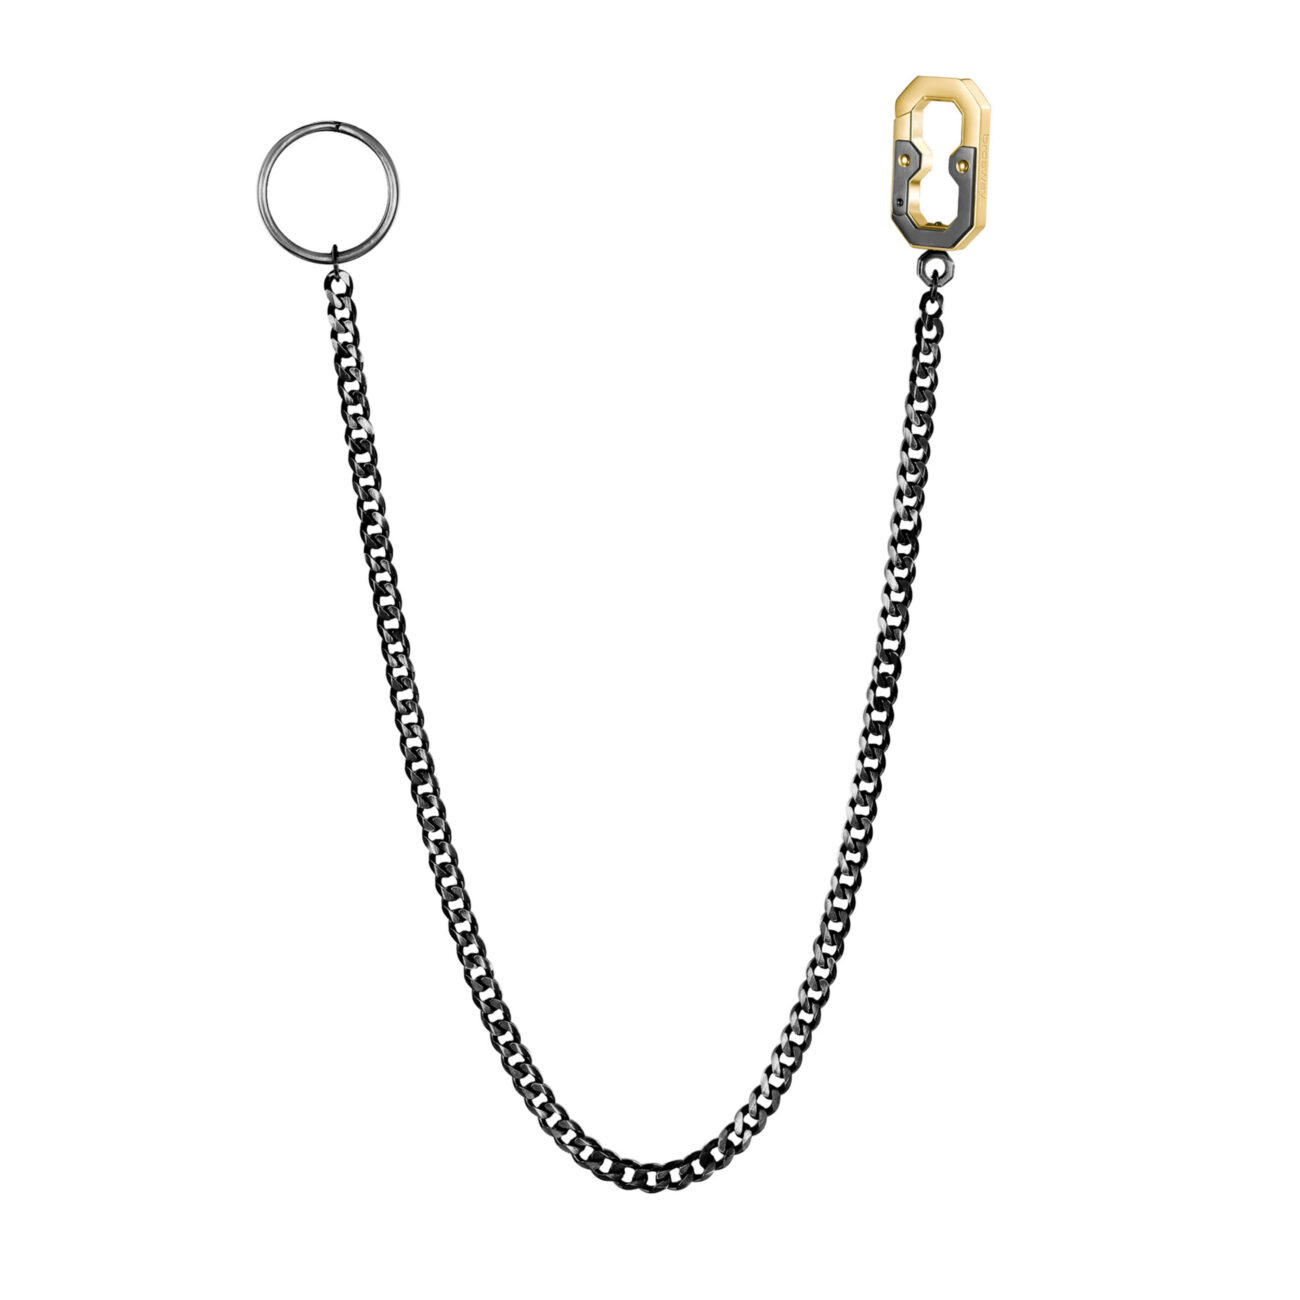 316L stainless steel keychain chain, burnished gun finish and gold finish snap hook.